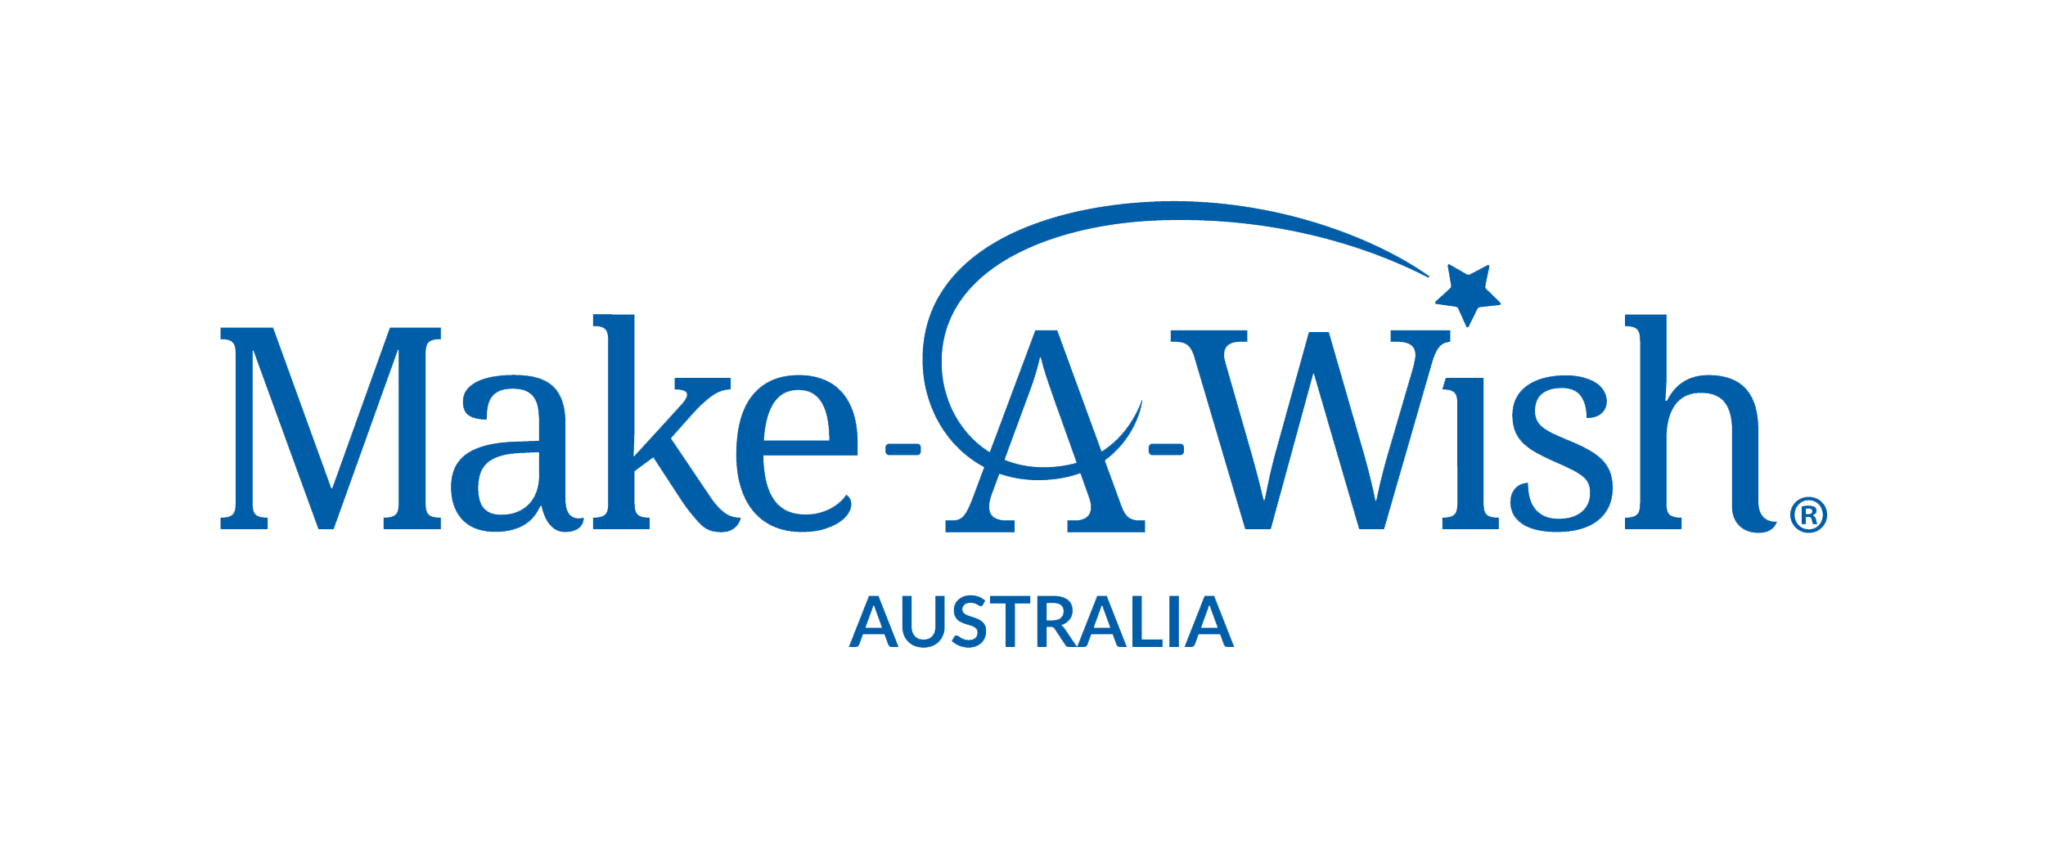 Make-A-Wish Australia Logo